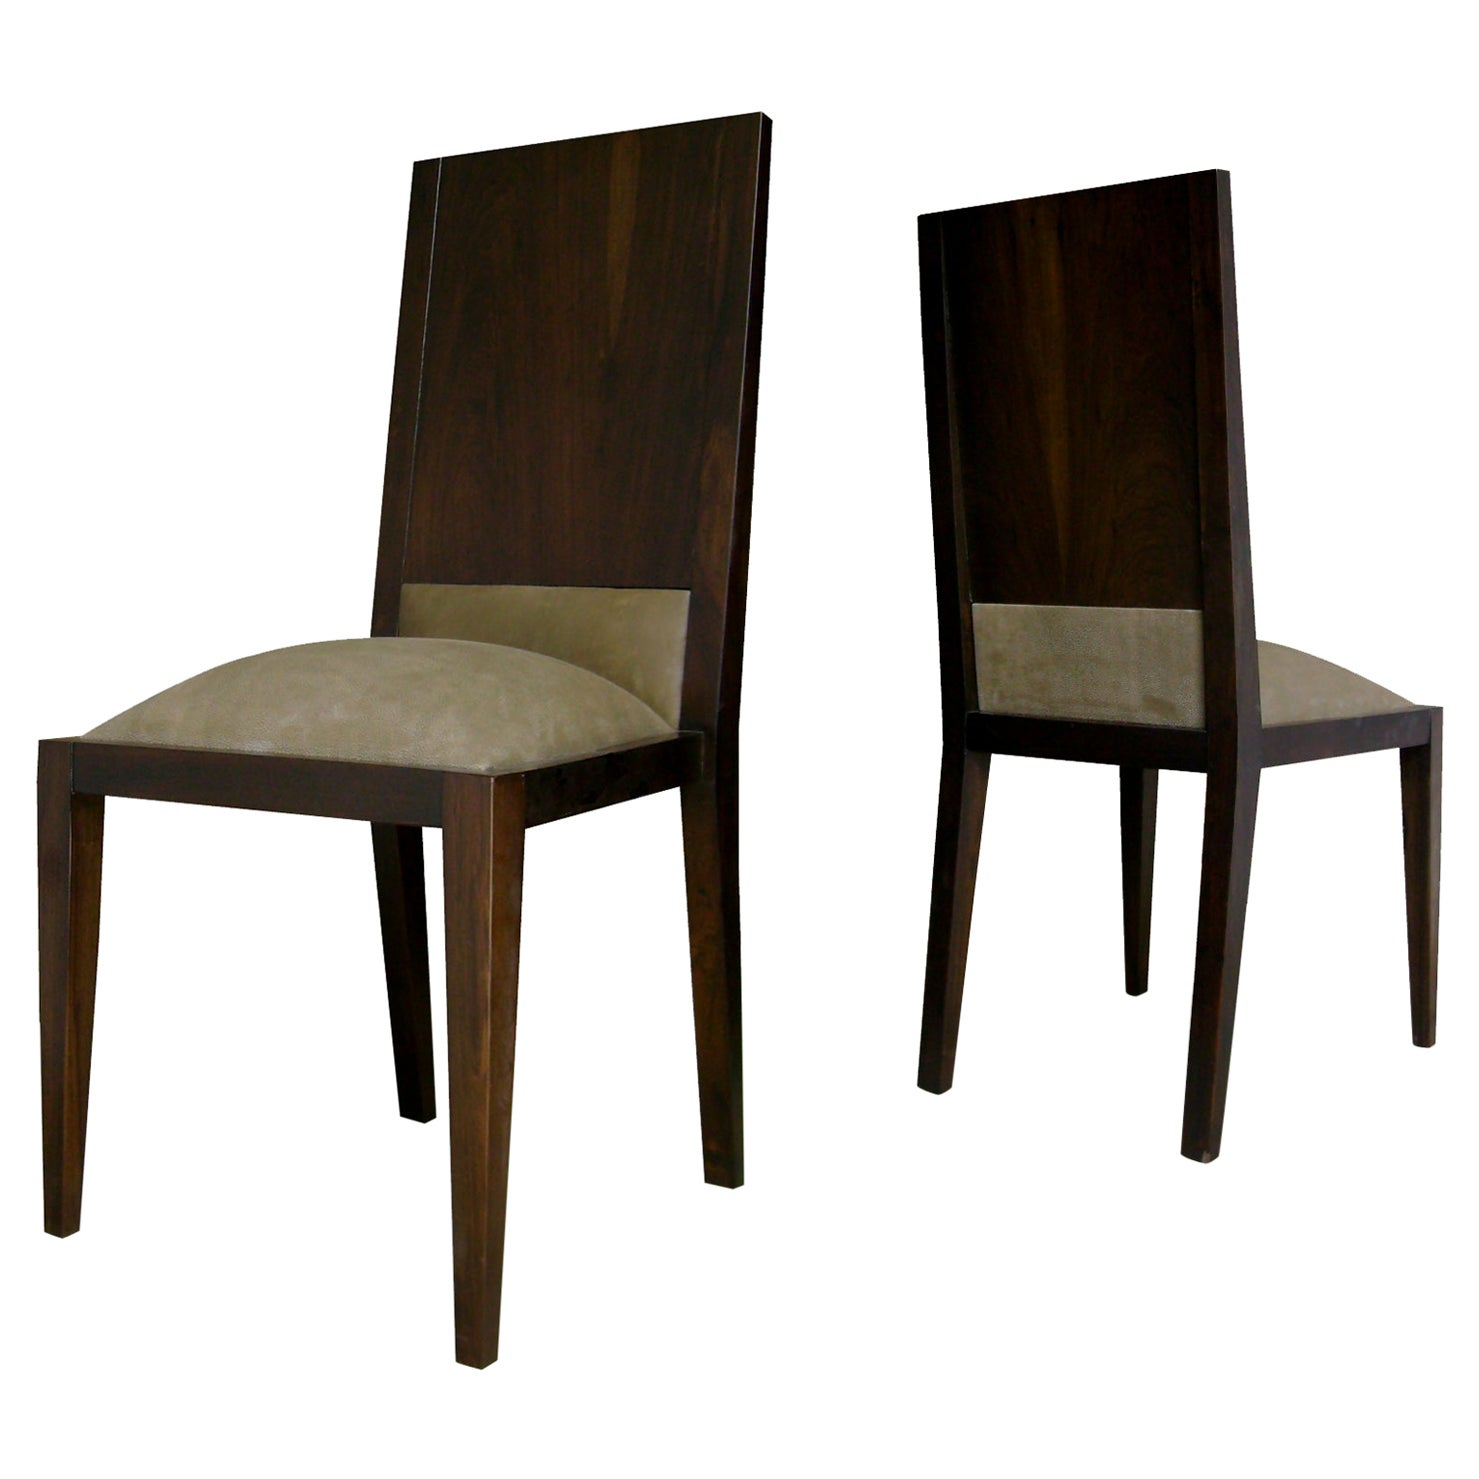 Palermo Dining Chair in Argentine Rosewood from Costantini